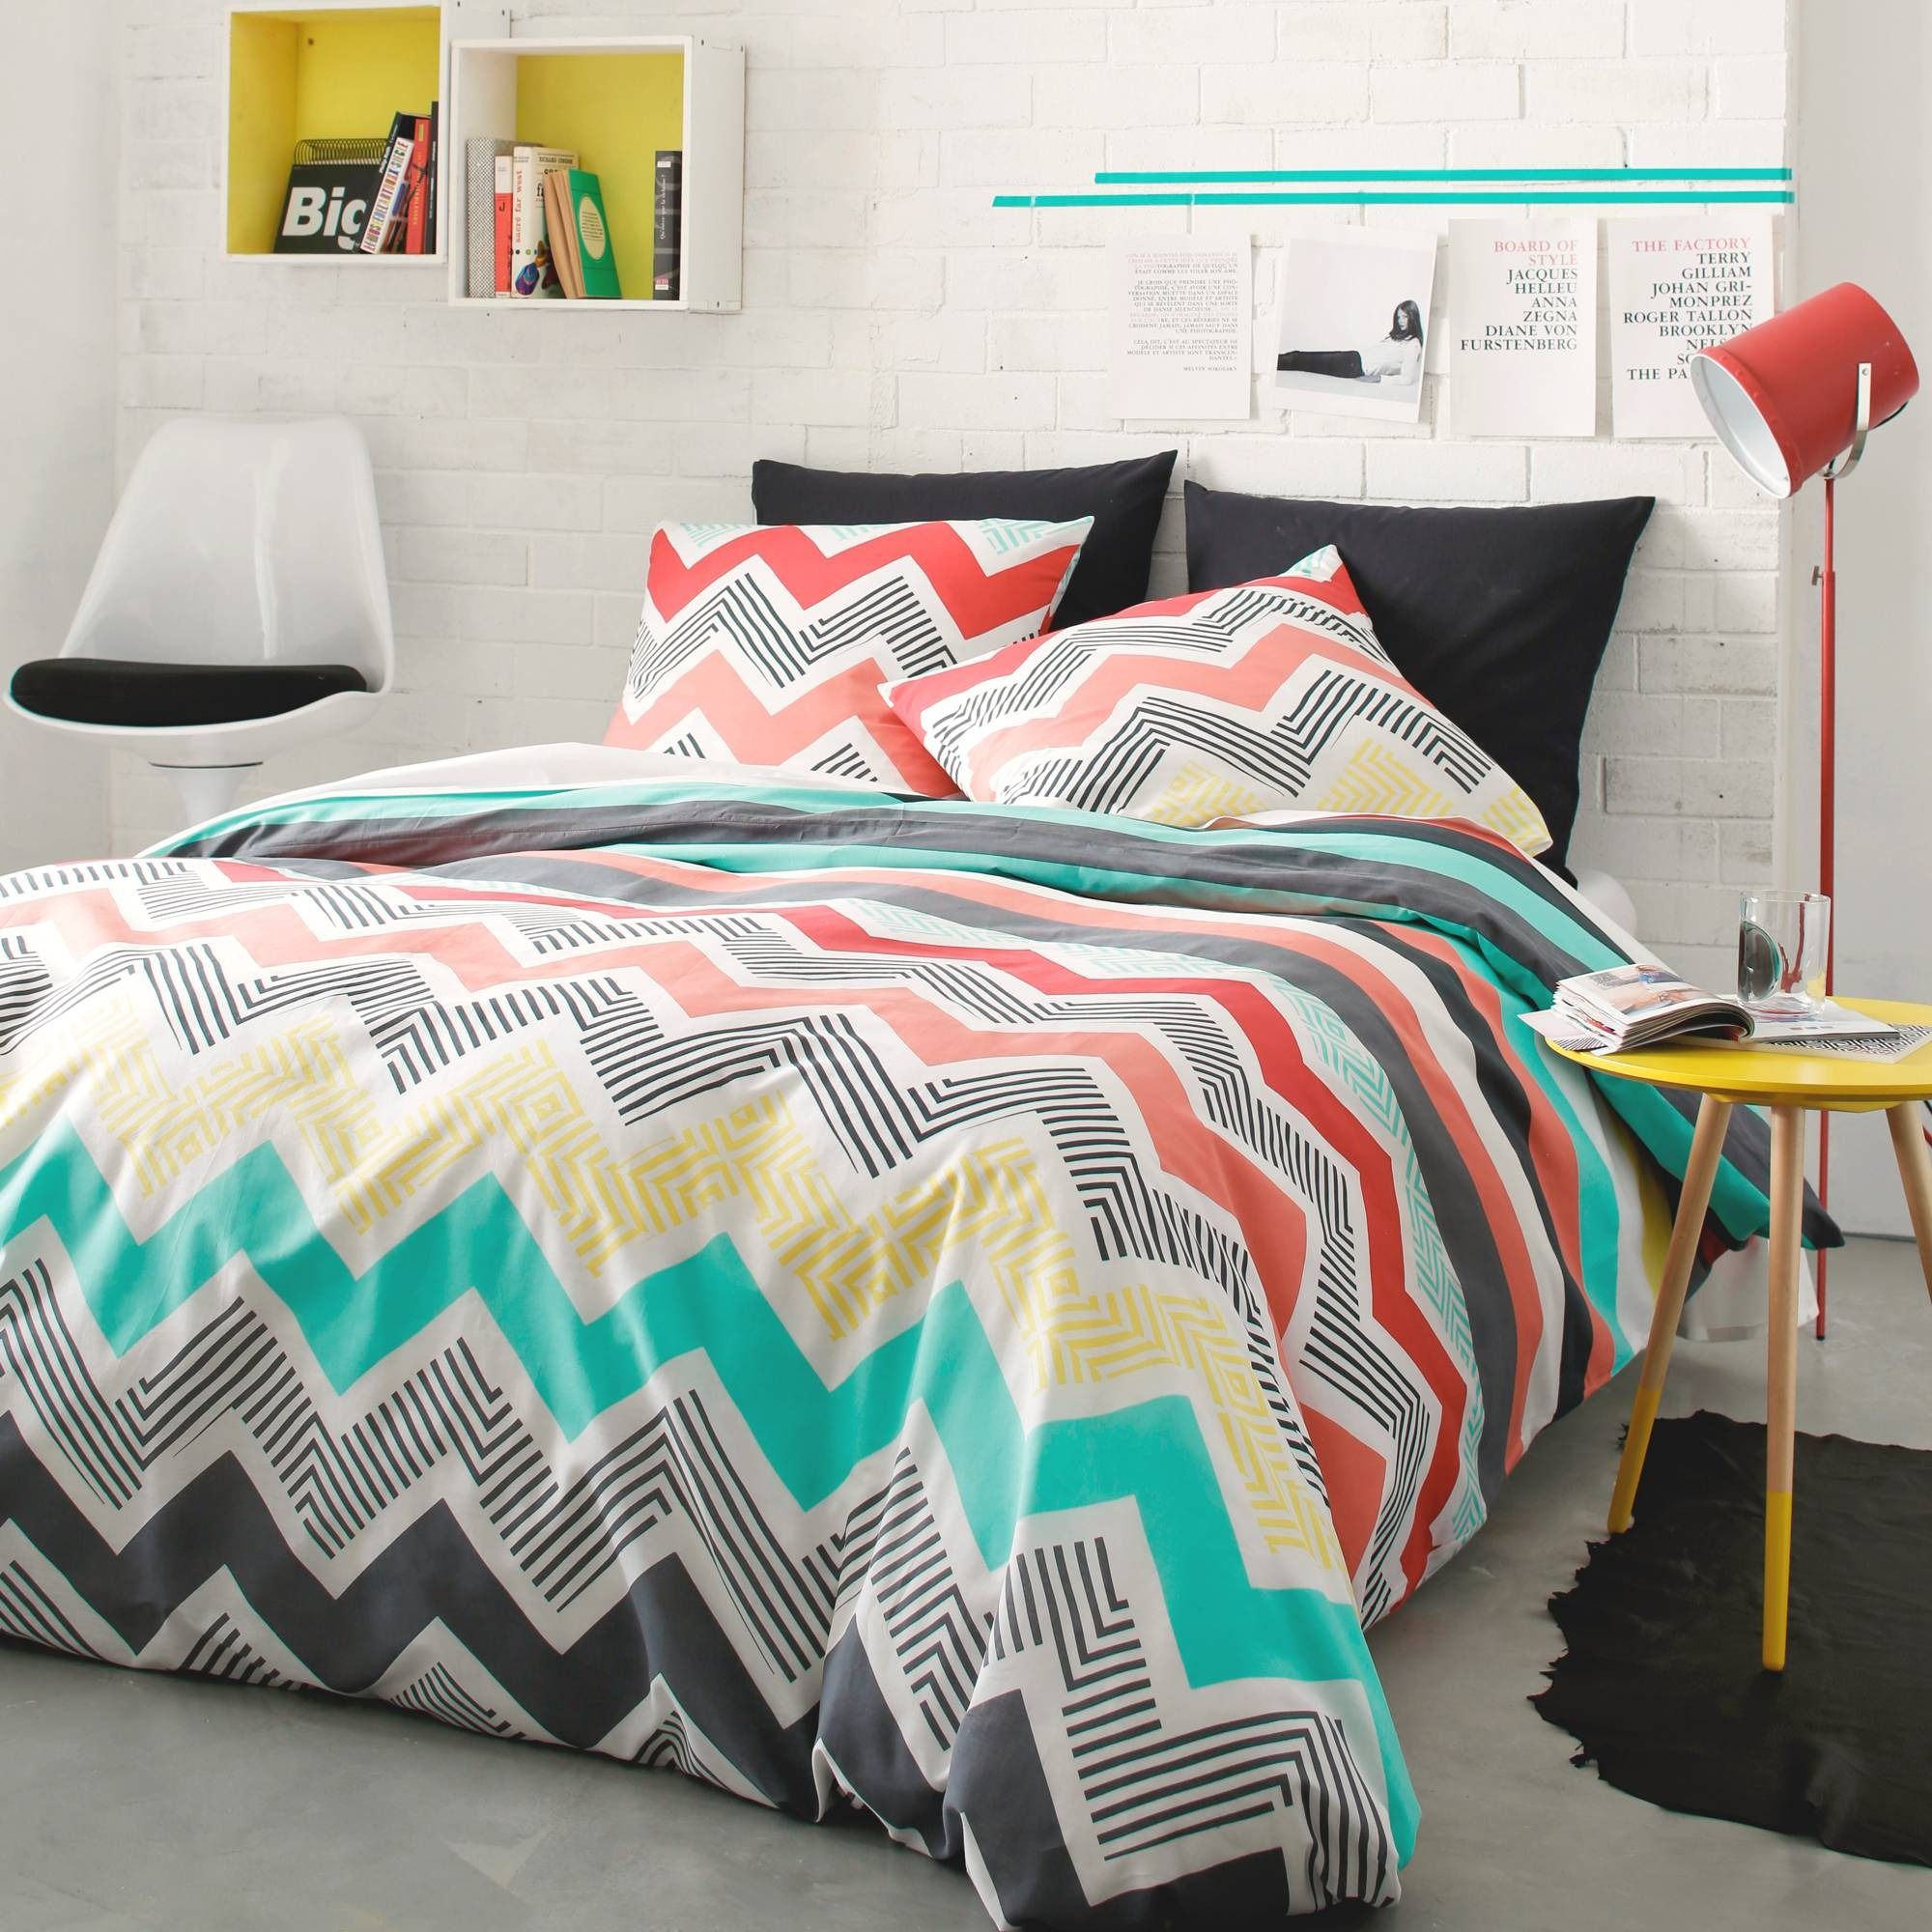 housse de couette coton rayures chevrons crush 3. Black Bedroom Furniture Sets. Home Design Ideas